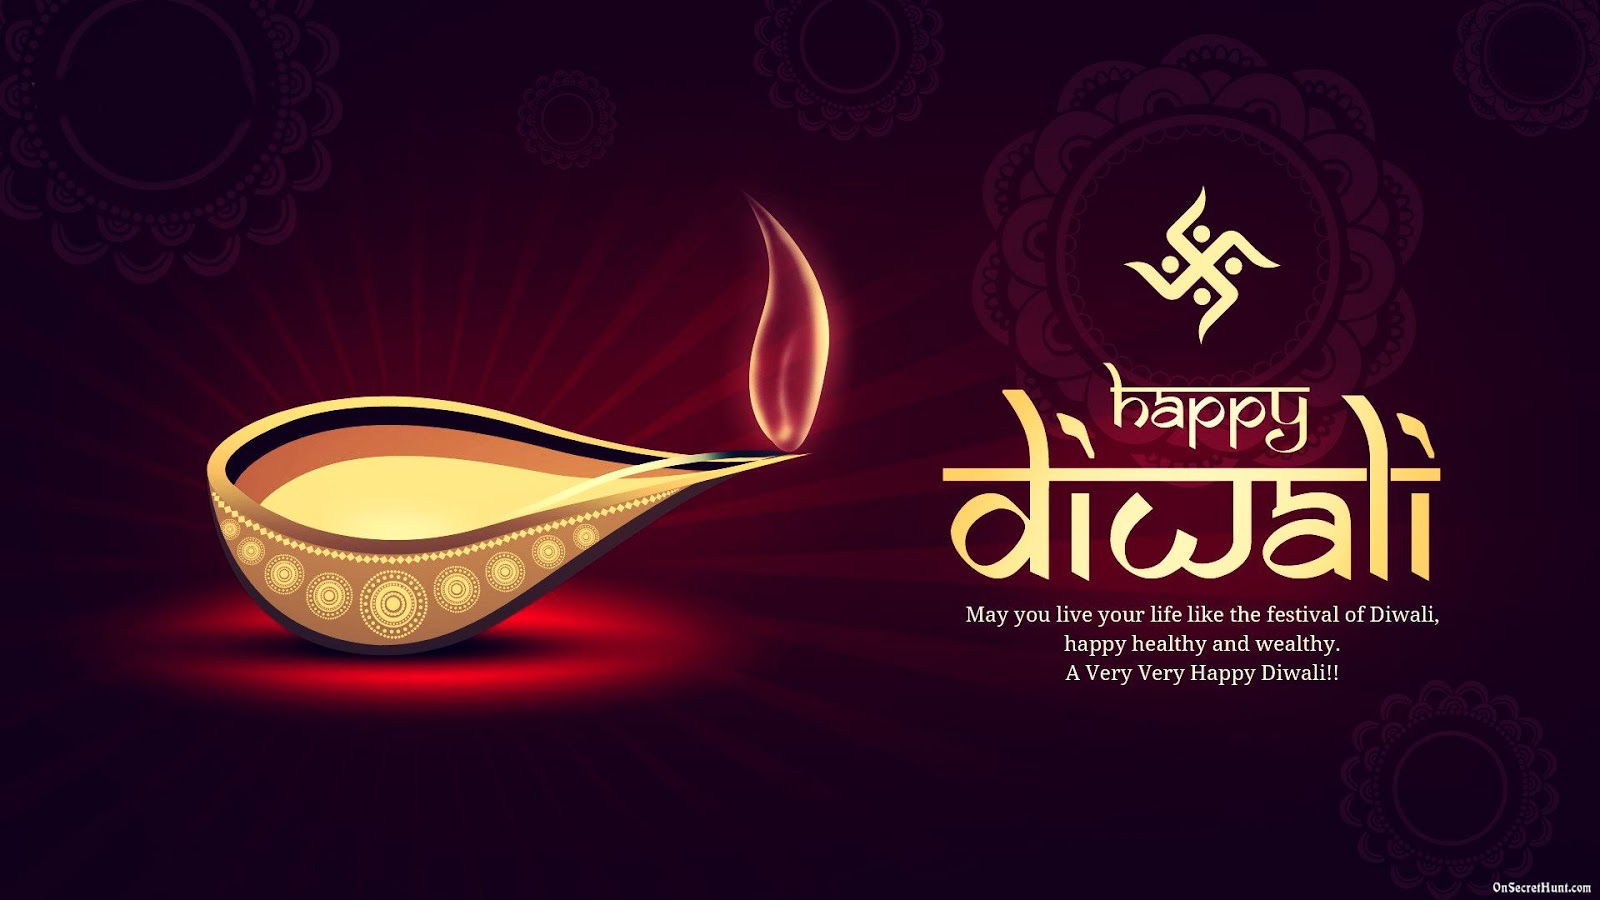 Deepavali greetings for facebook wall life lyrics deepavali greetings images wallpapers kristyandbryce Gallery